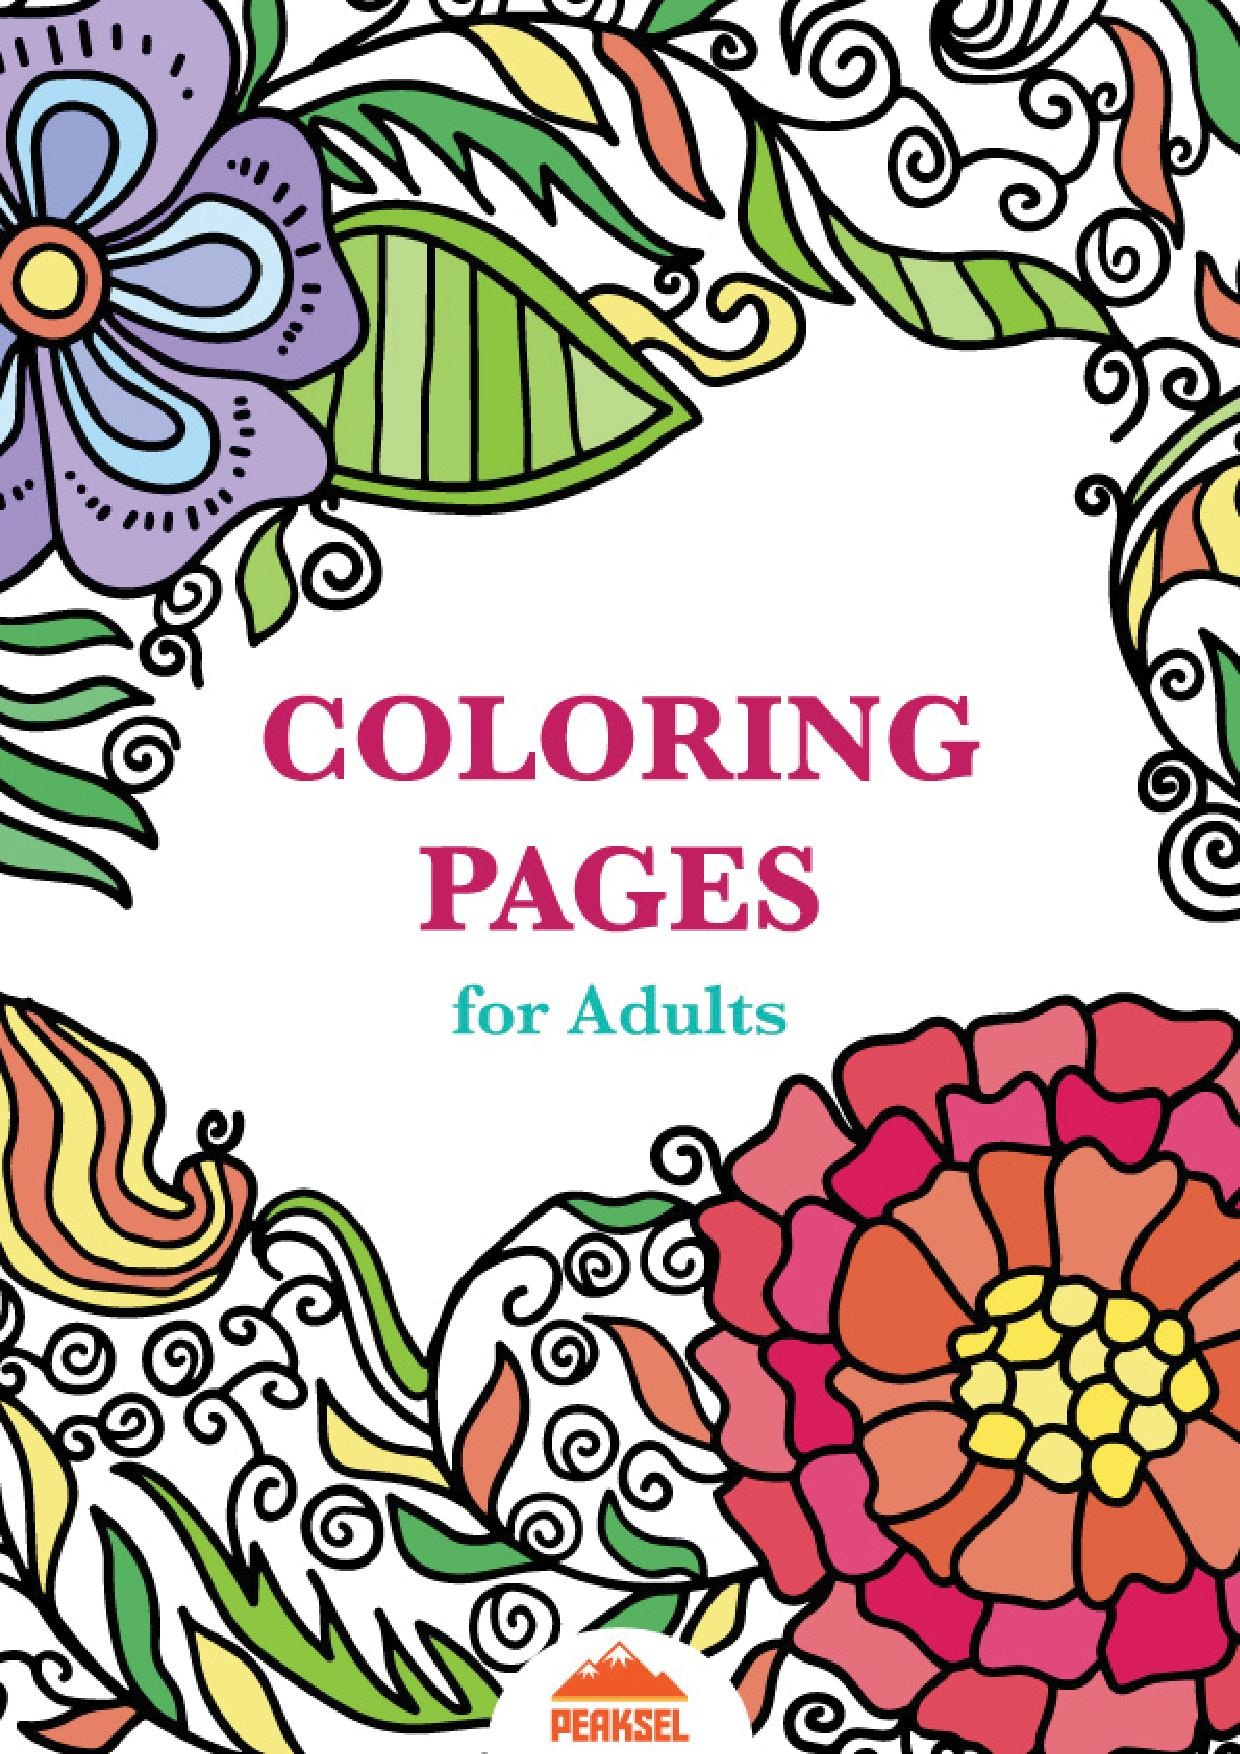 The Art of Adult Coloring Books | Her Campus